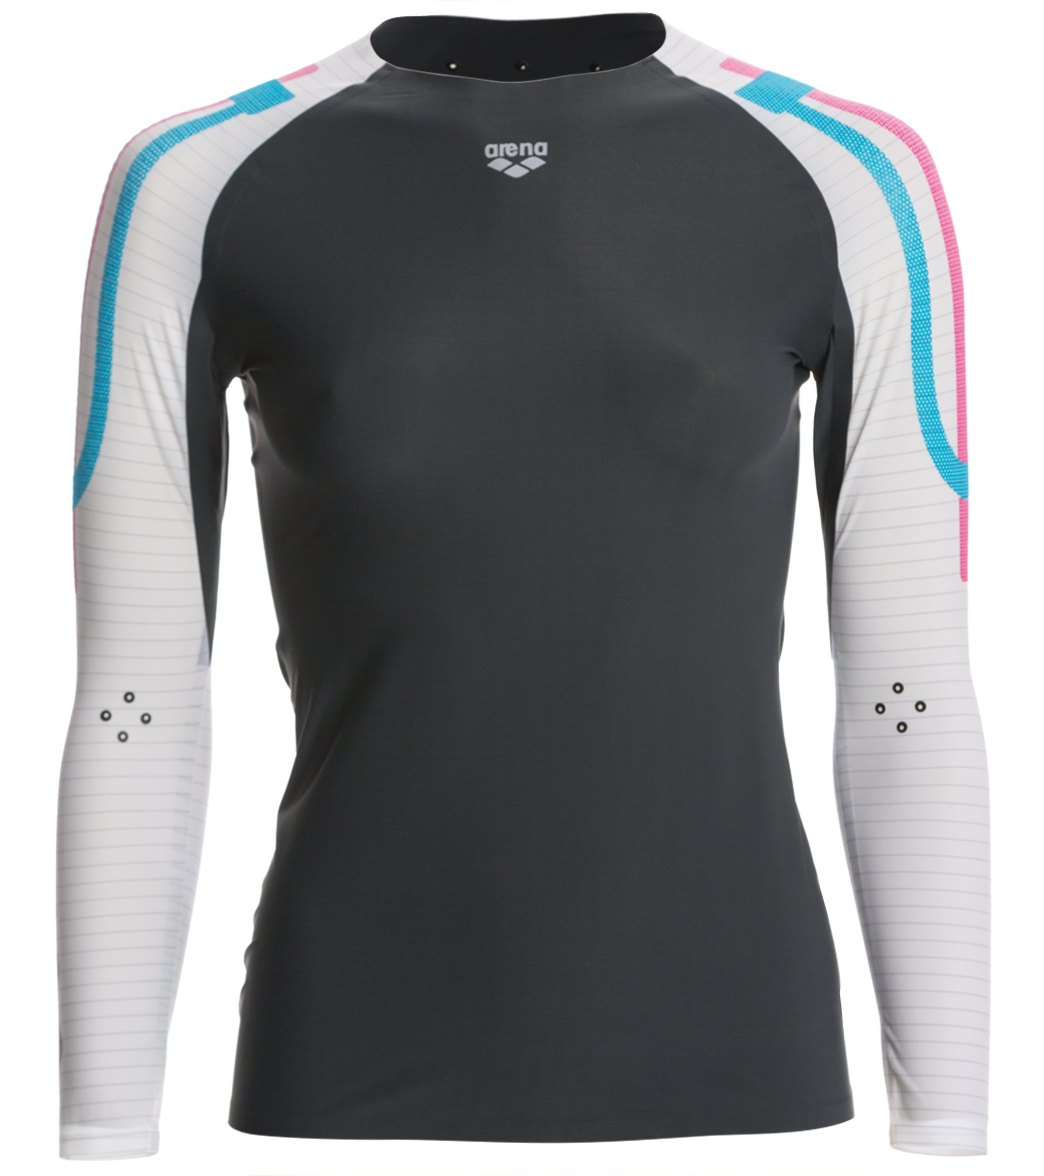 Men's Clothing Professional Sale Skins A200 Long Sleeve Compression Top Long Sleeve Shirt Fitness Sport Shirt Durable Service